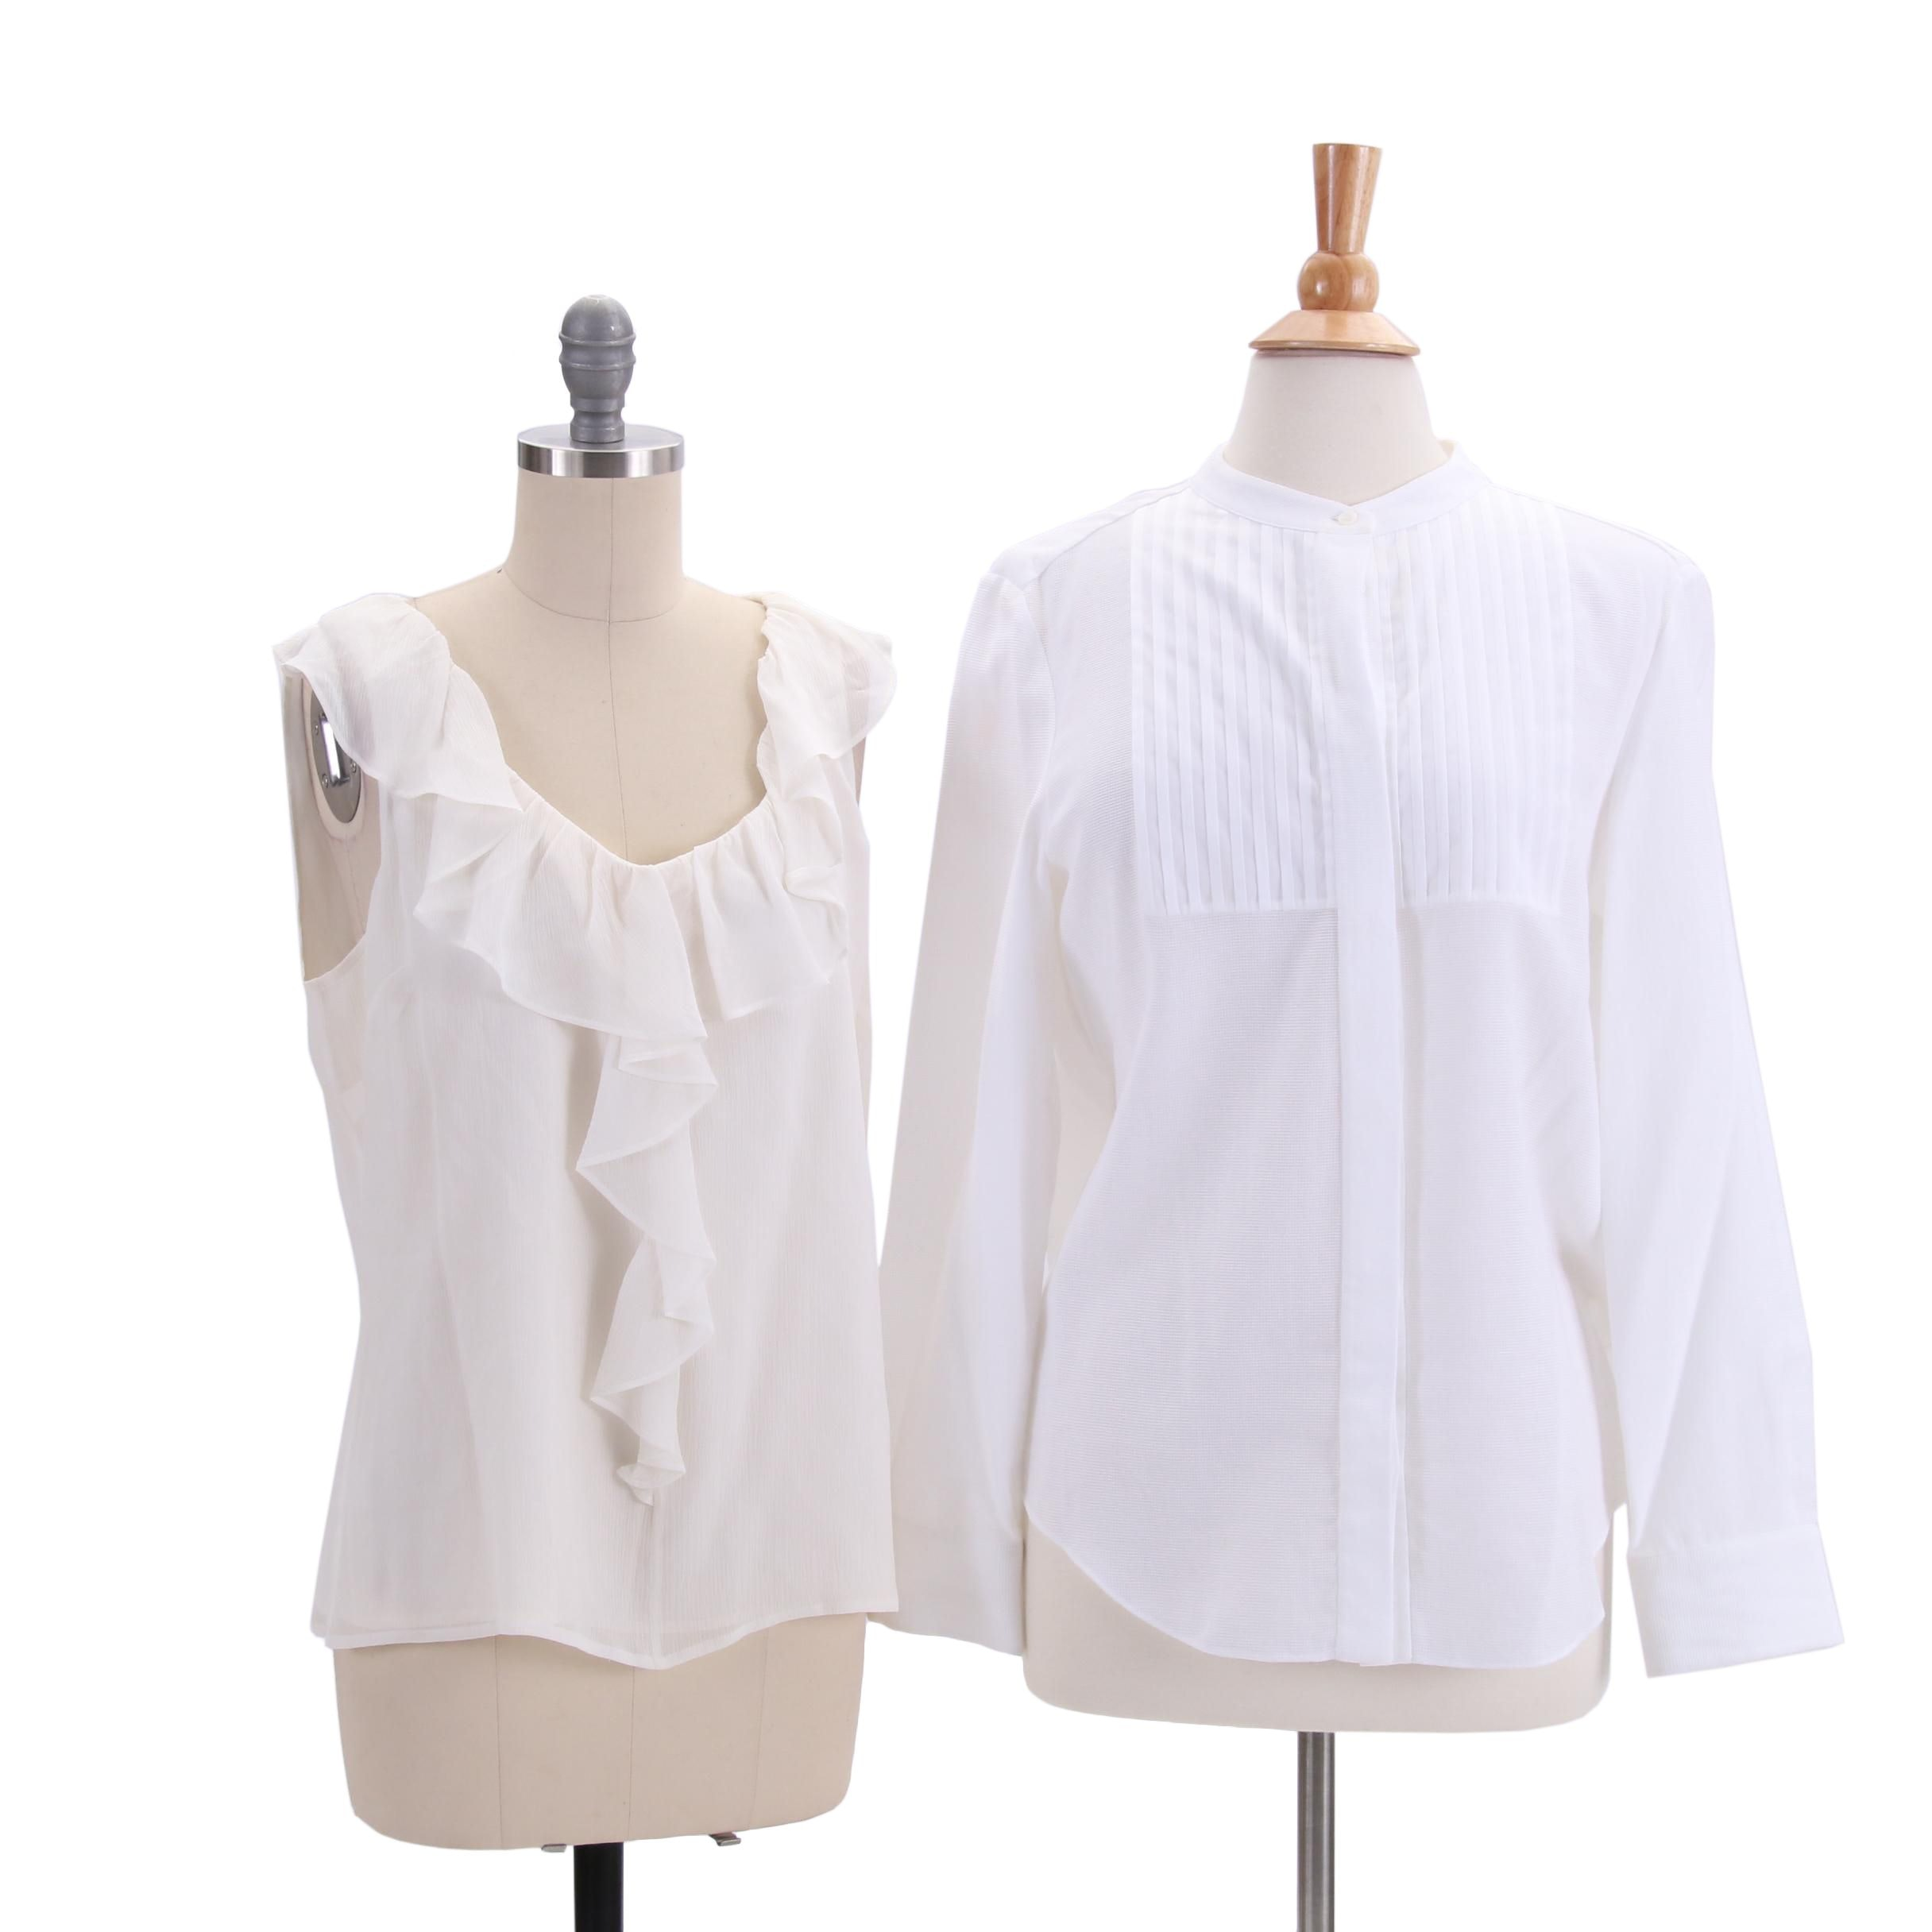 Women's Piazza Sempione and St. John Blouses